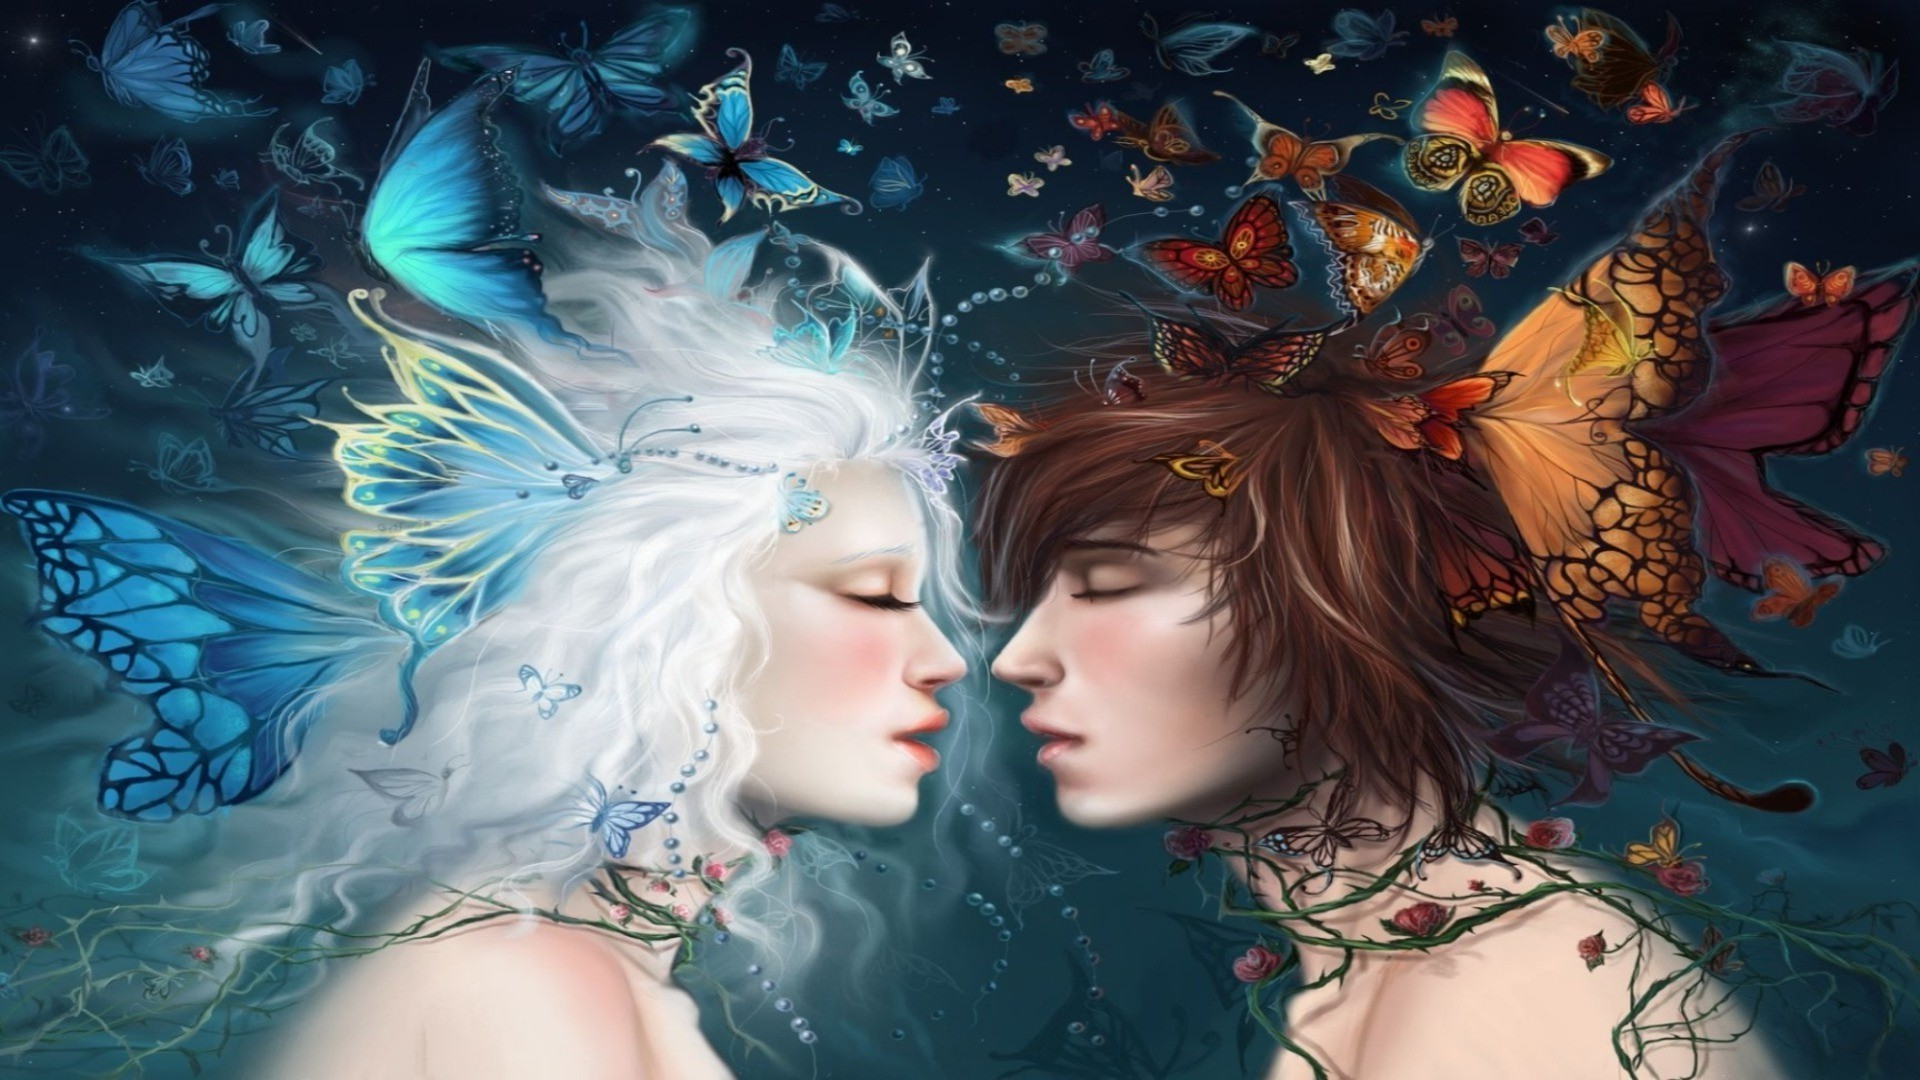 Kiss of butterflies